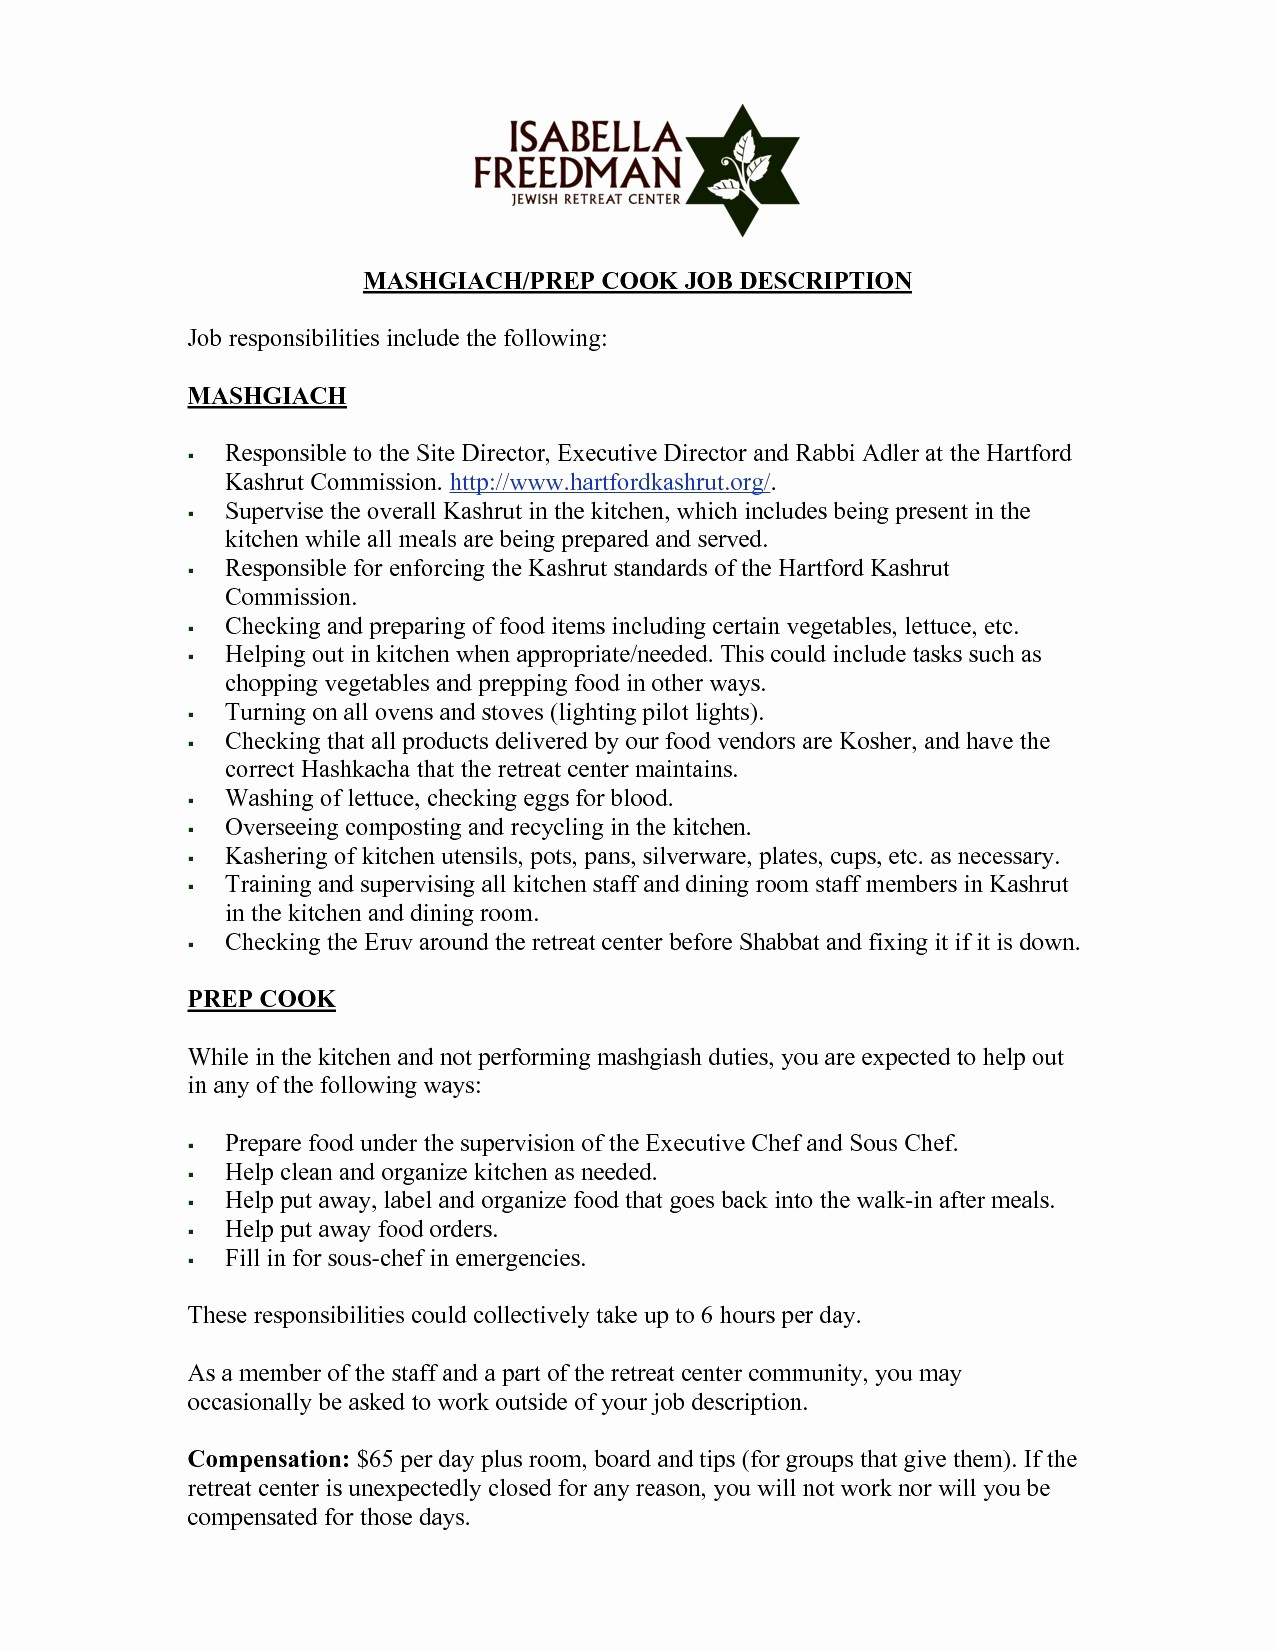 Sorority Cover Letter Template - Registered Nurse Resume Template Free Awesome Resume and Cover